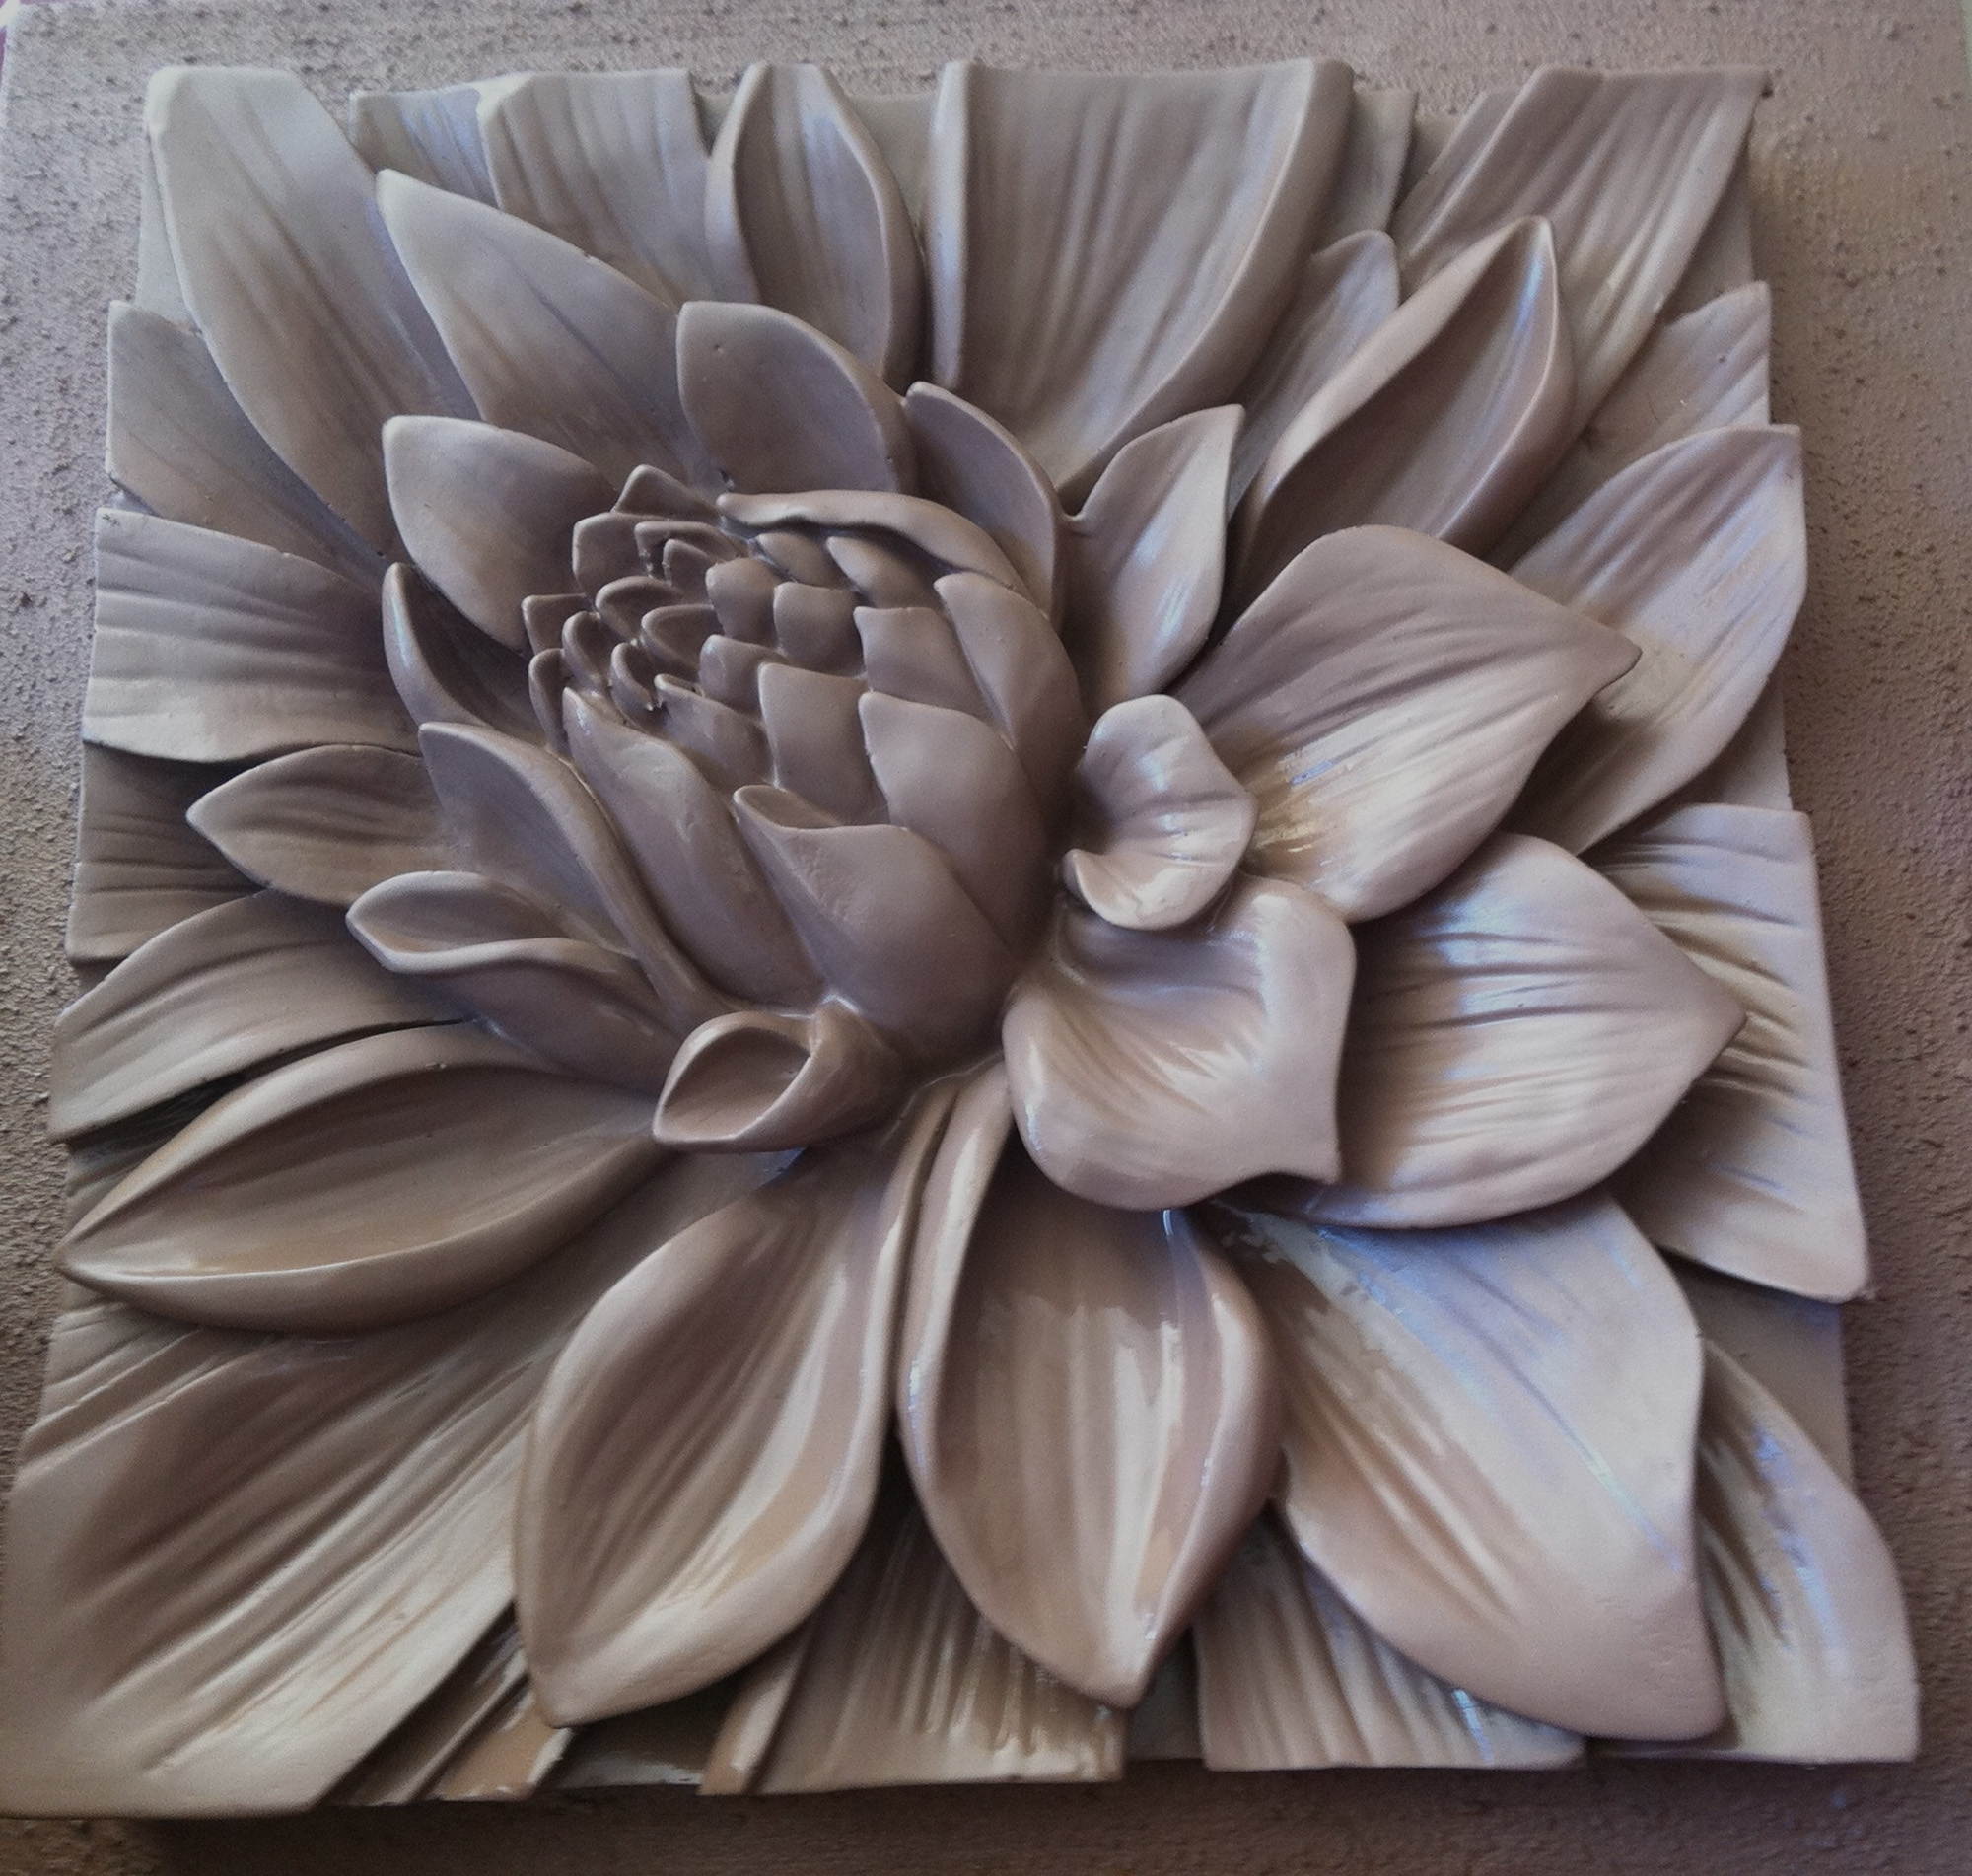 3D Wall Art And Interiors Inside Well Liked Wall Art Ideas Design : Canvas Borderless 3D Flower Wall Art (View 4 of 15)